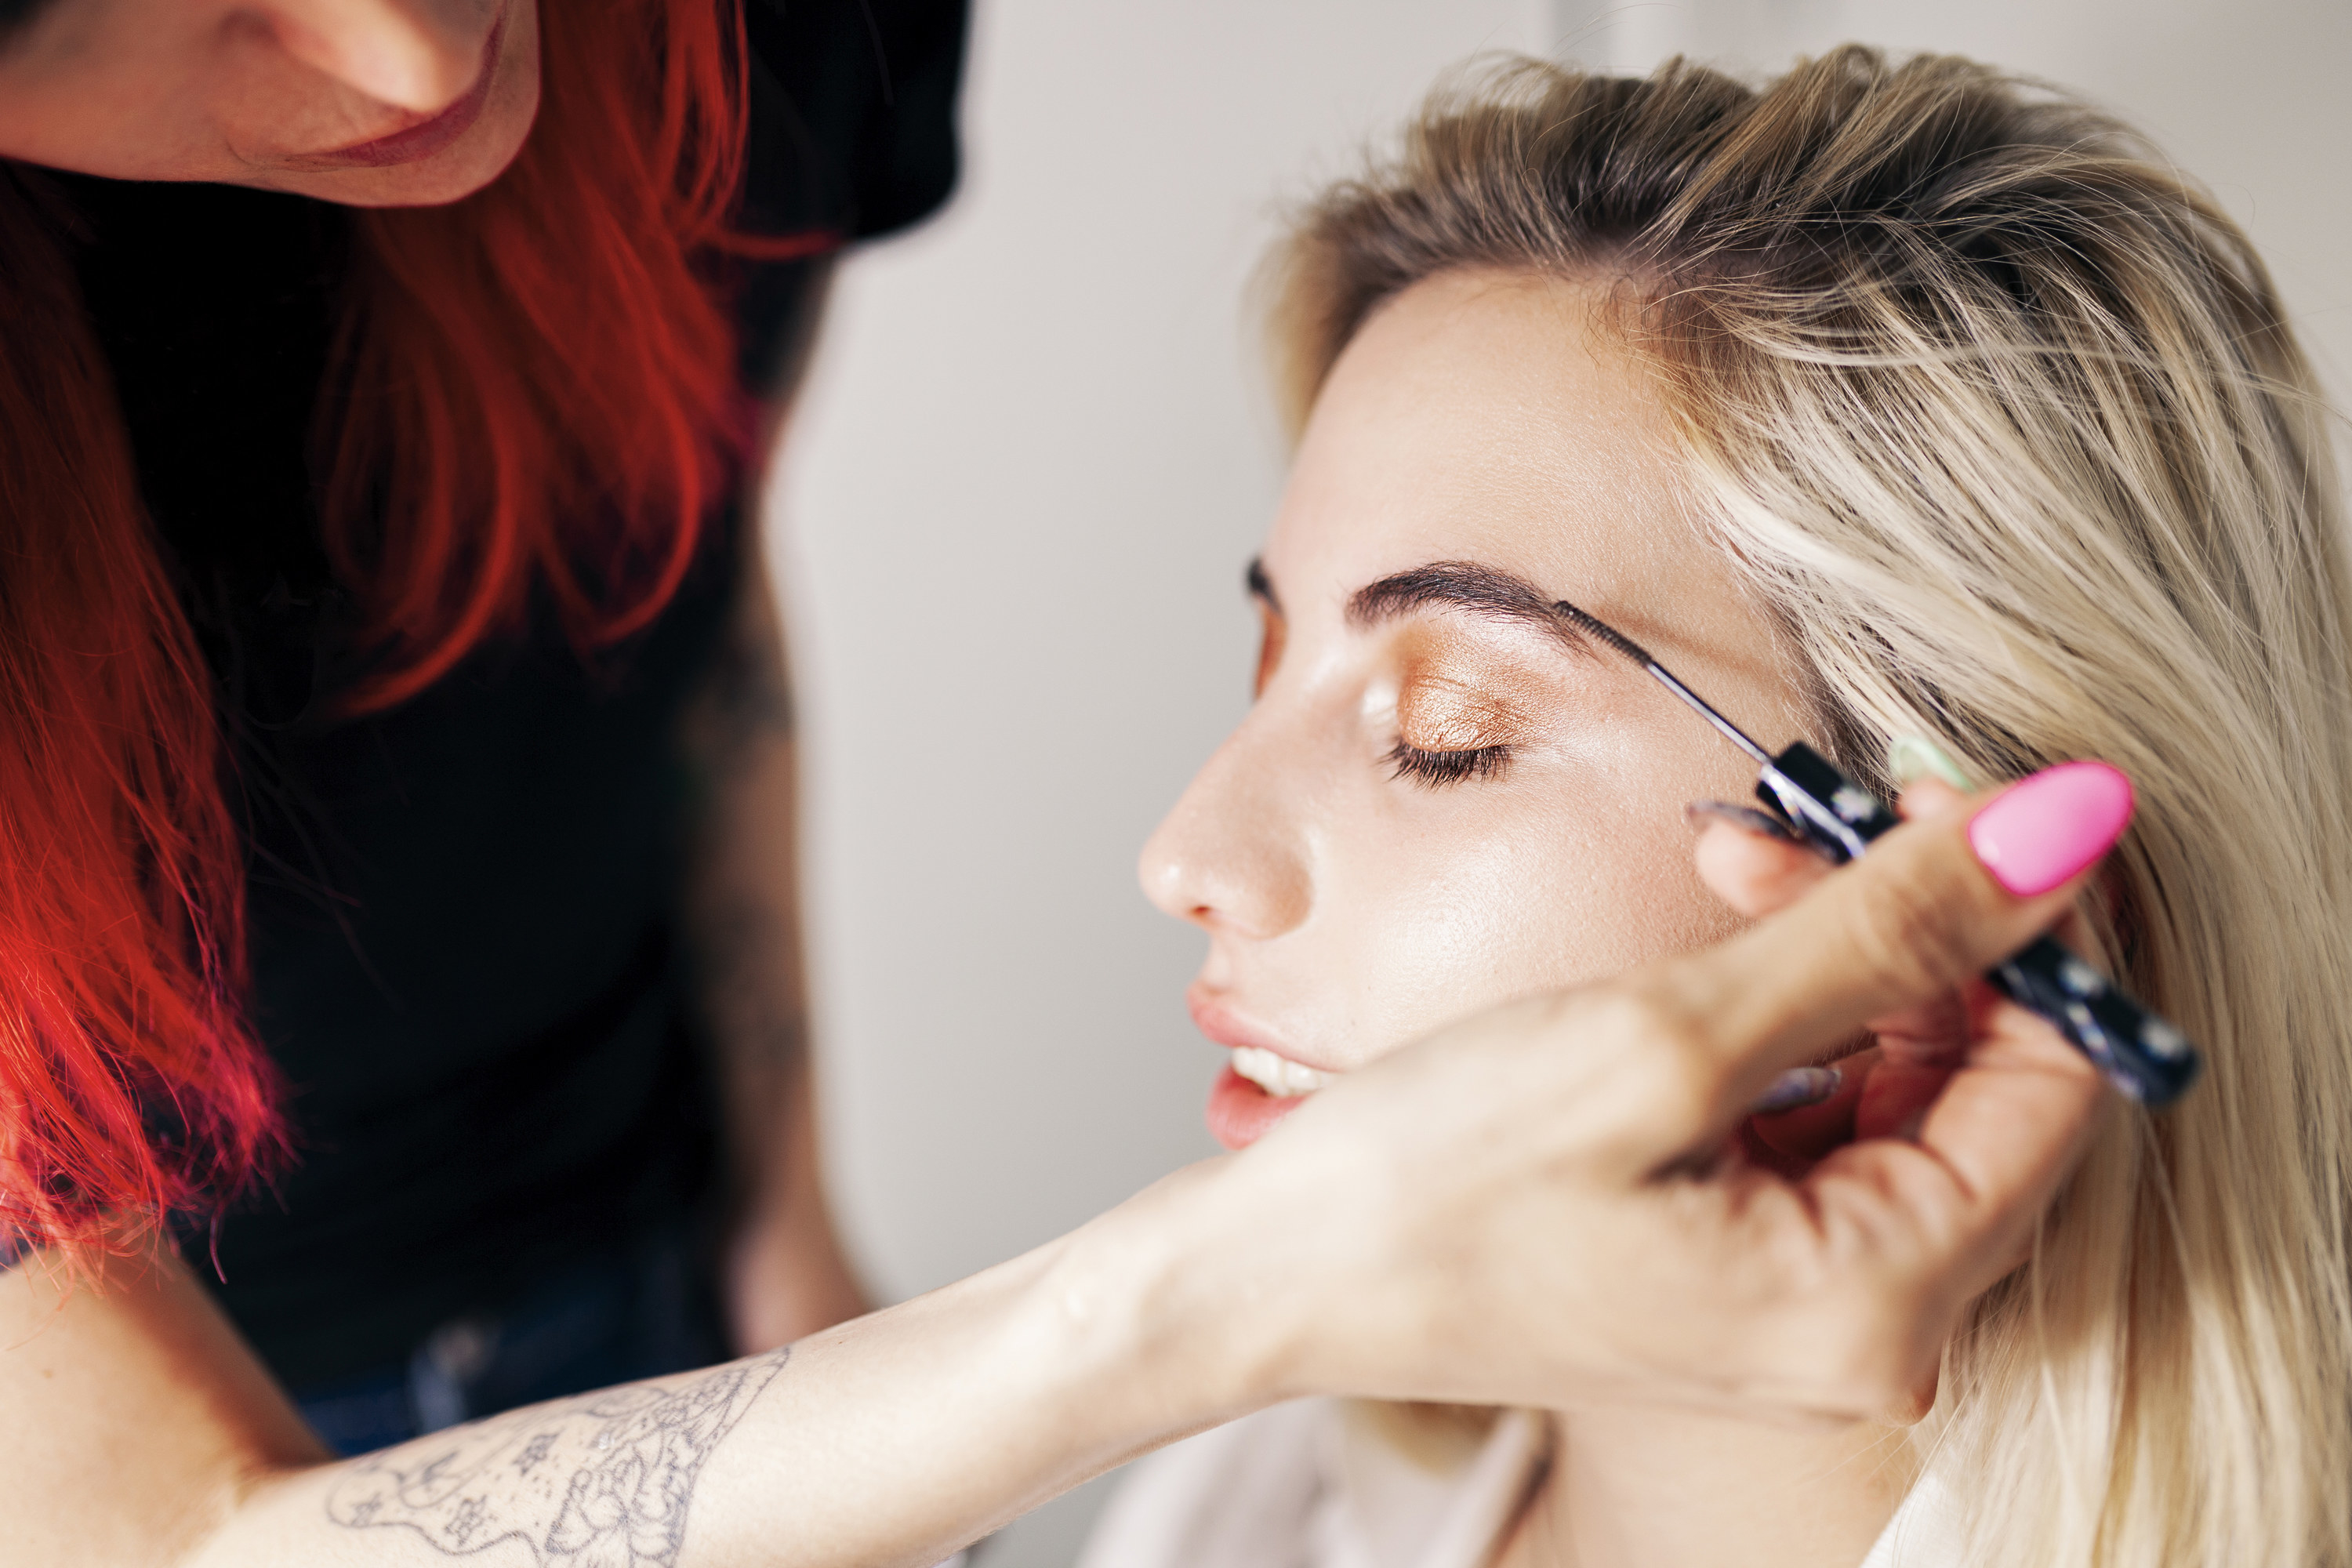 A person getting their eyebrows done by a makeup artist